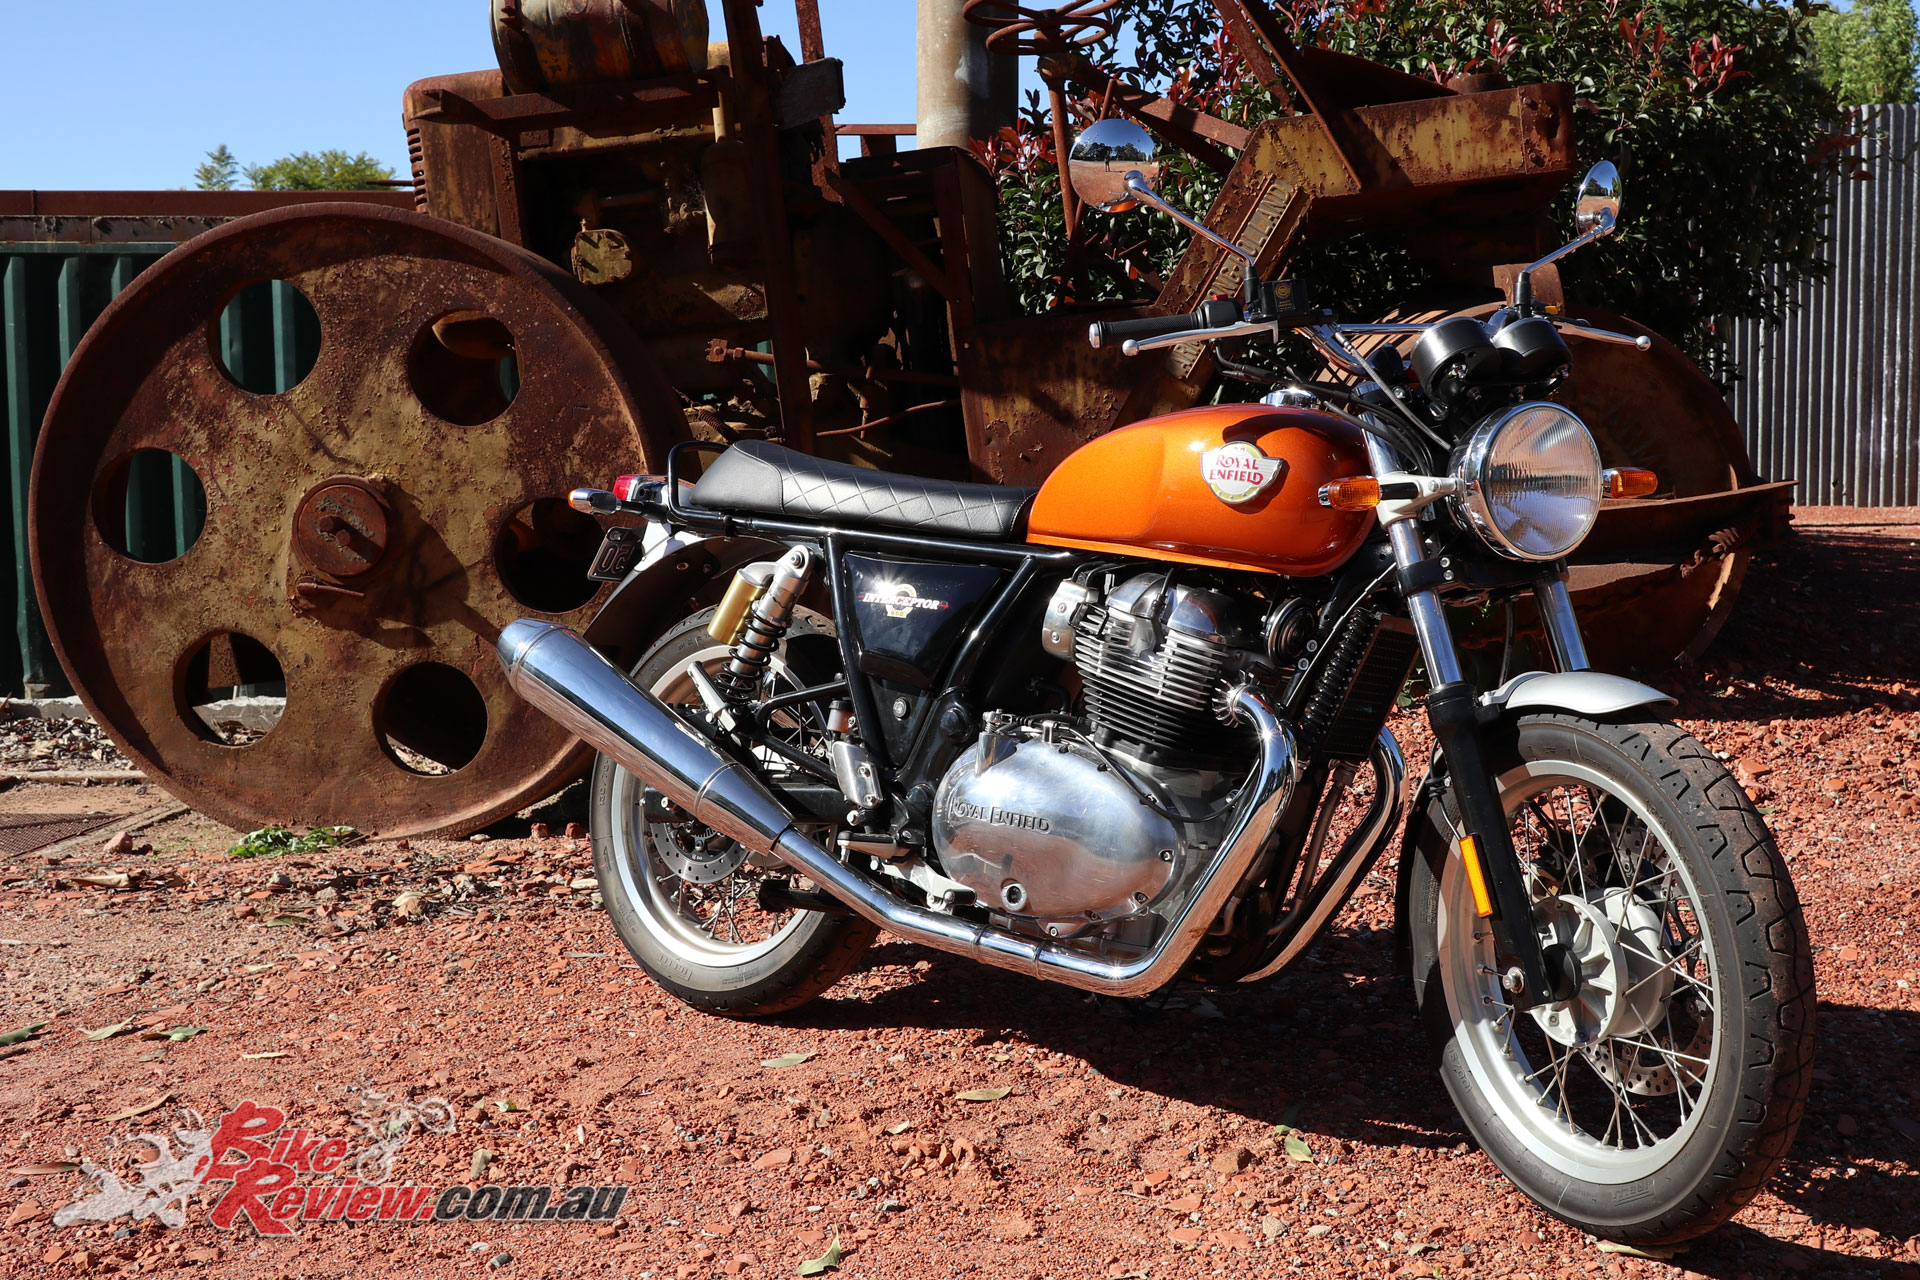 The Royal Enfield Interceptor 650 really offers outstanding styling and value to the right rider